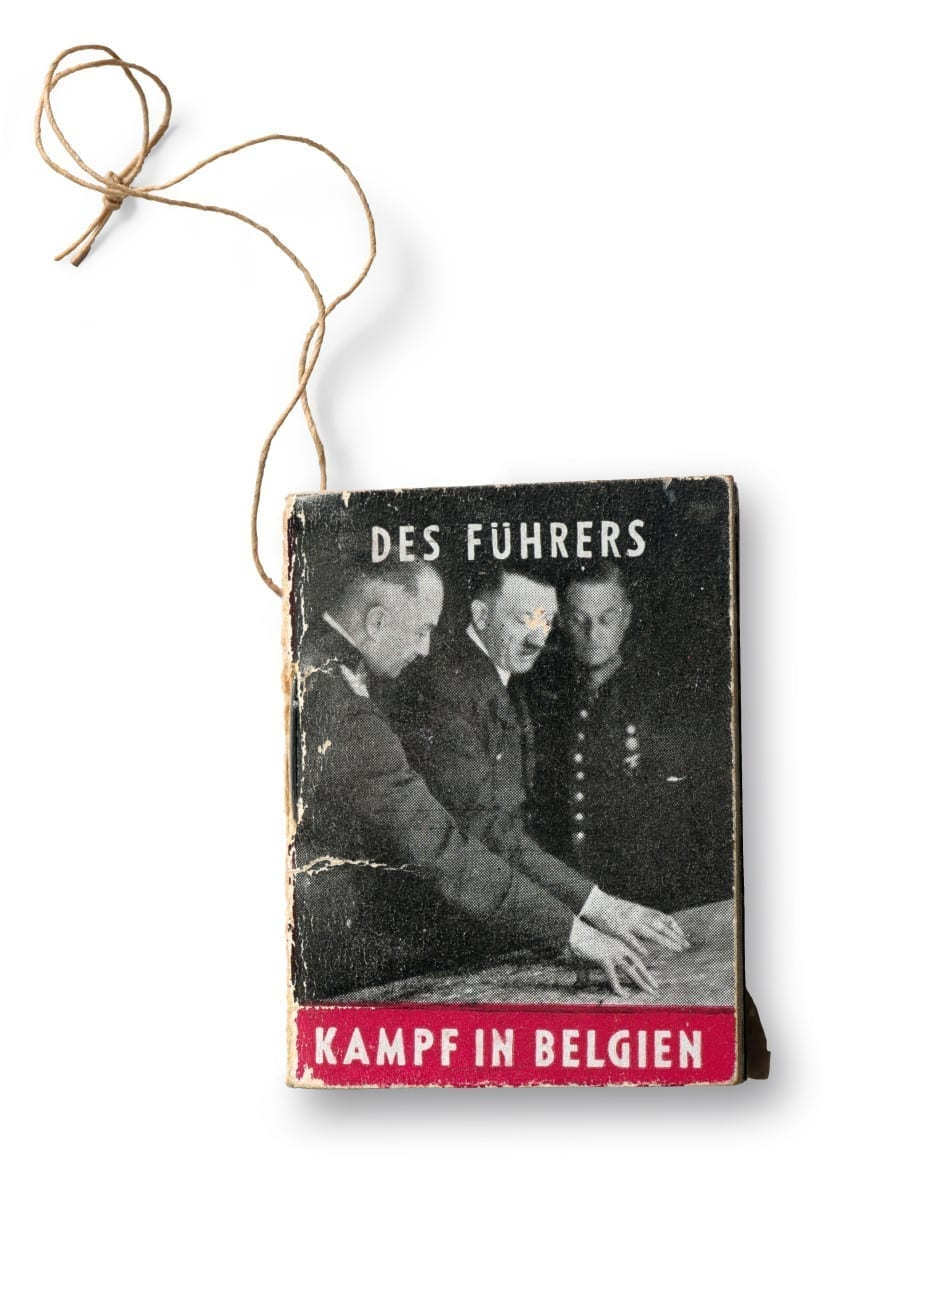 A Winter Relief Fund booklet from the series Der Führer Macht Geschichte (The Führer Makes History), published by Gild Dokumente Heinrich Hoffmann, Munich, 1937-41